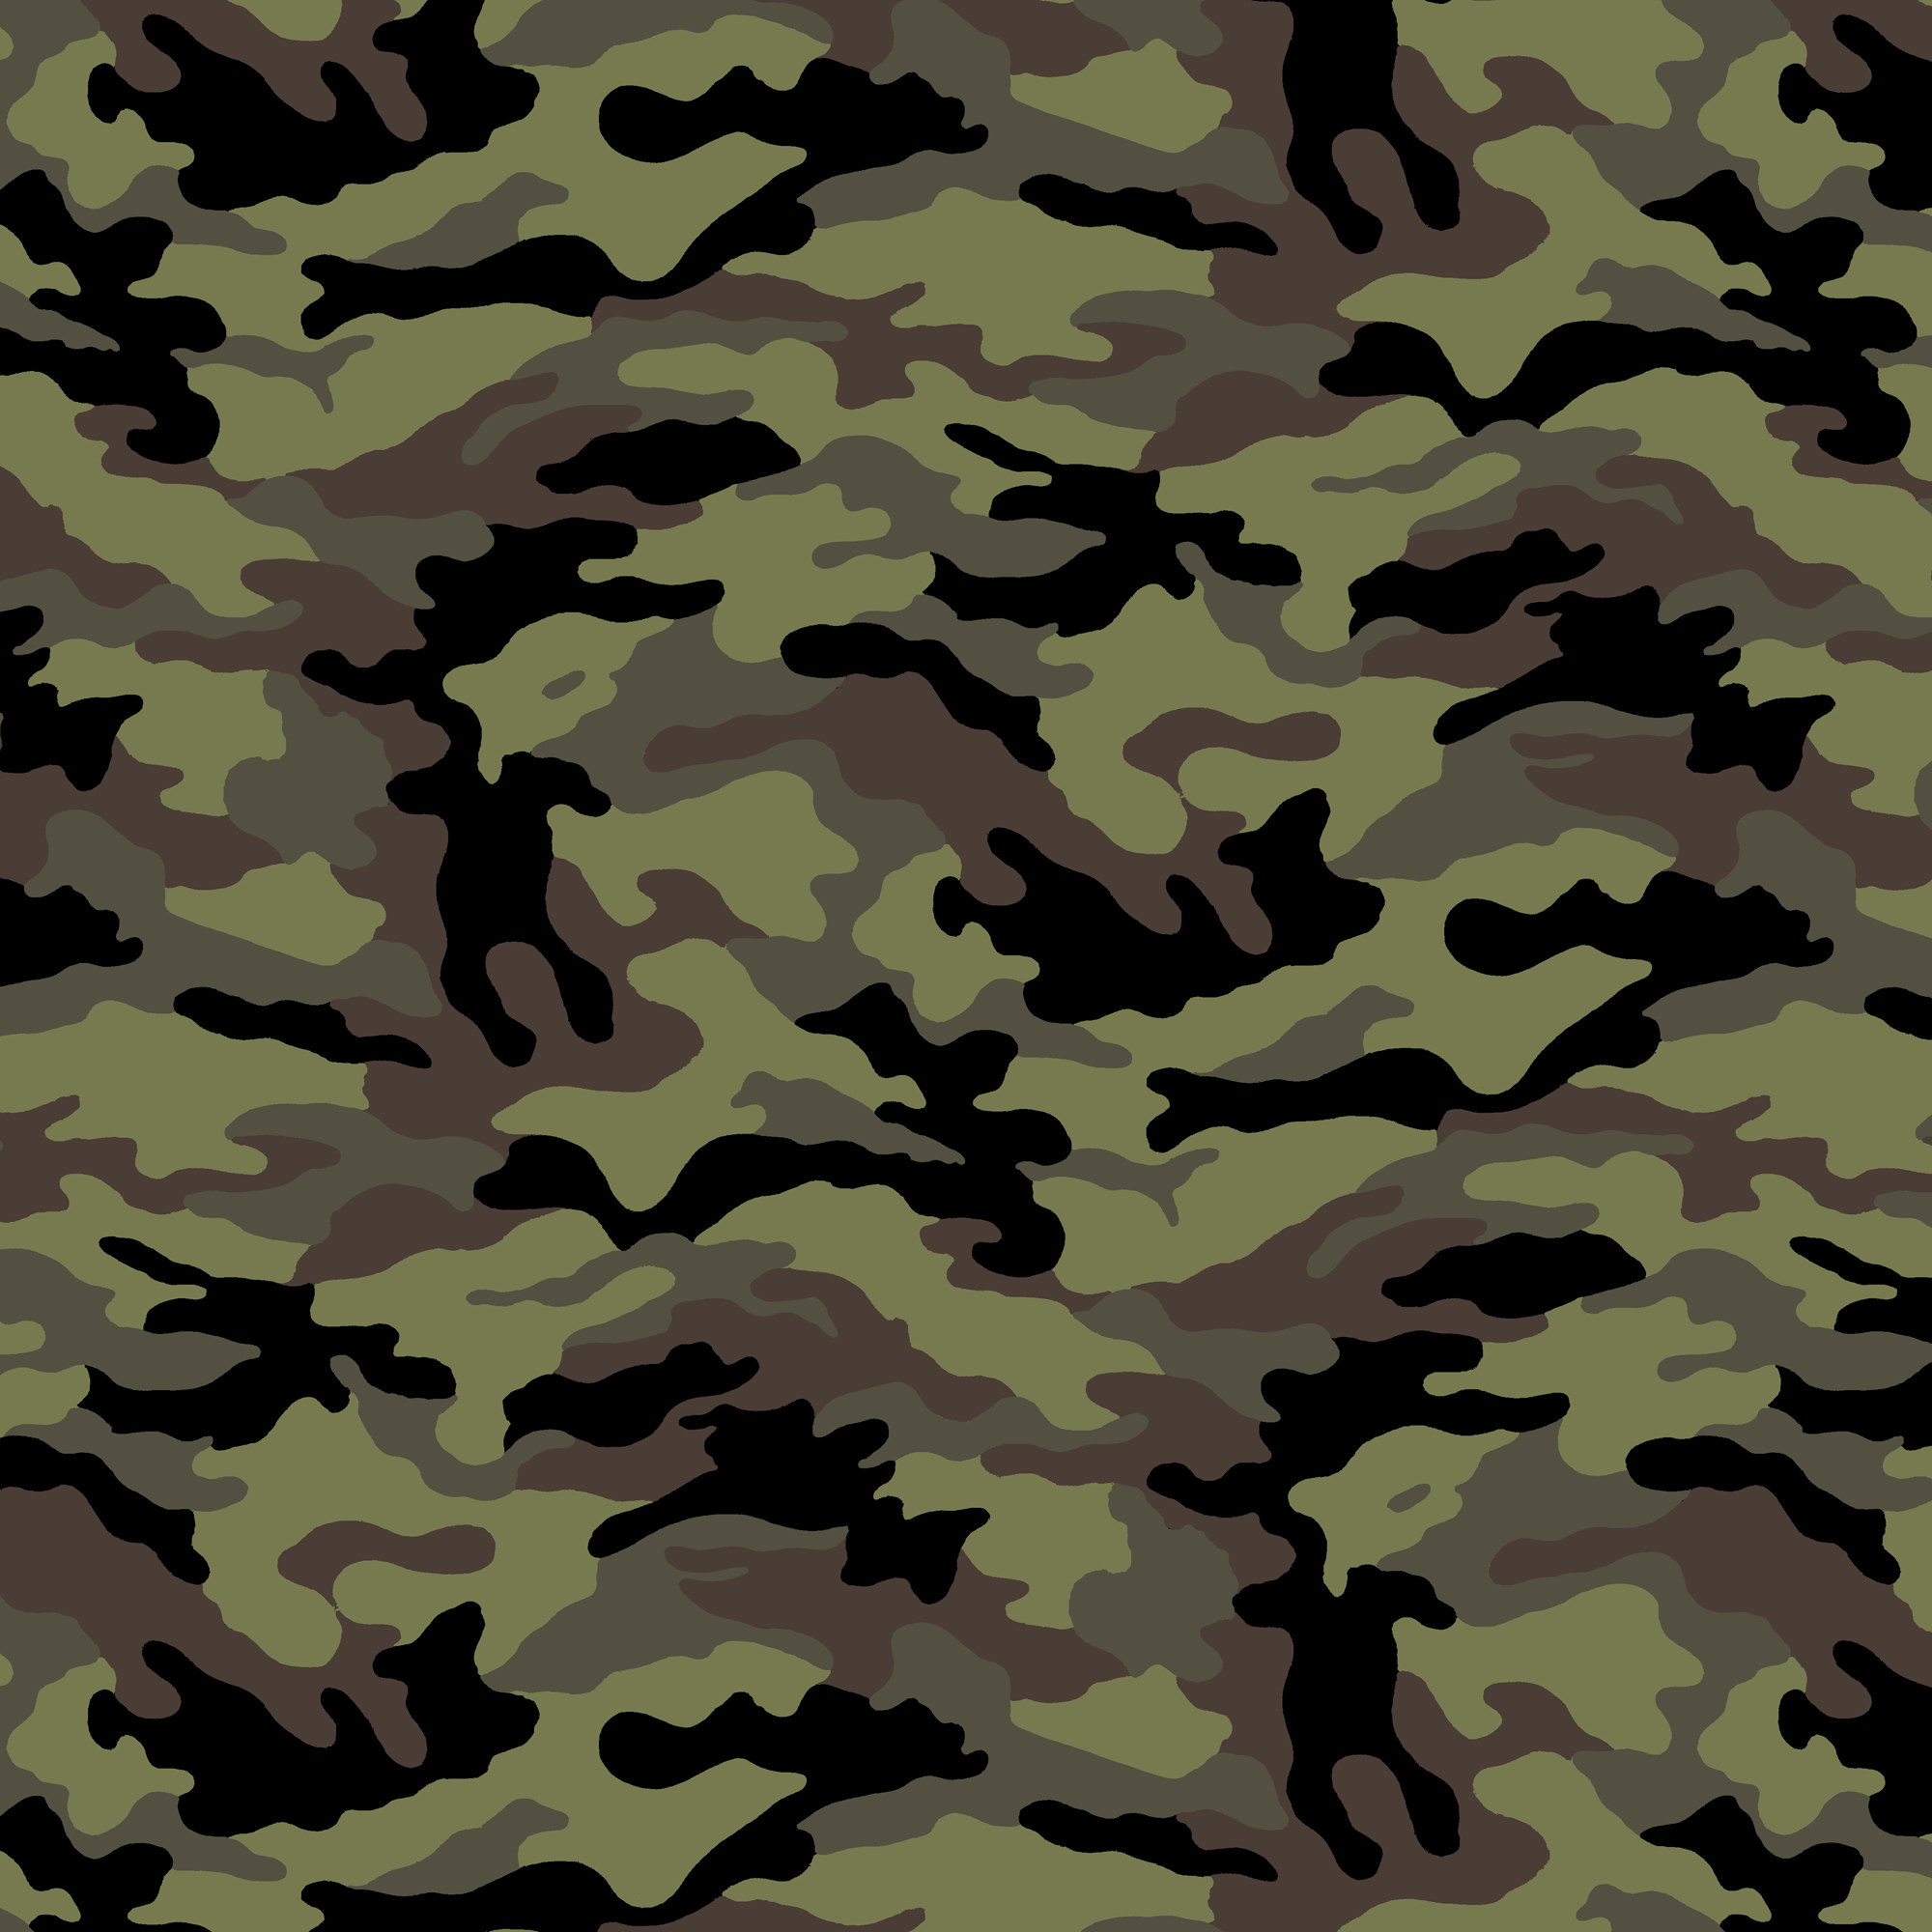 David Textiles Cotton Precut Fabric Camo 1 Yd X 44 Inches